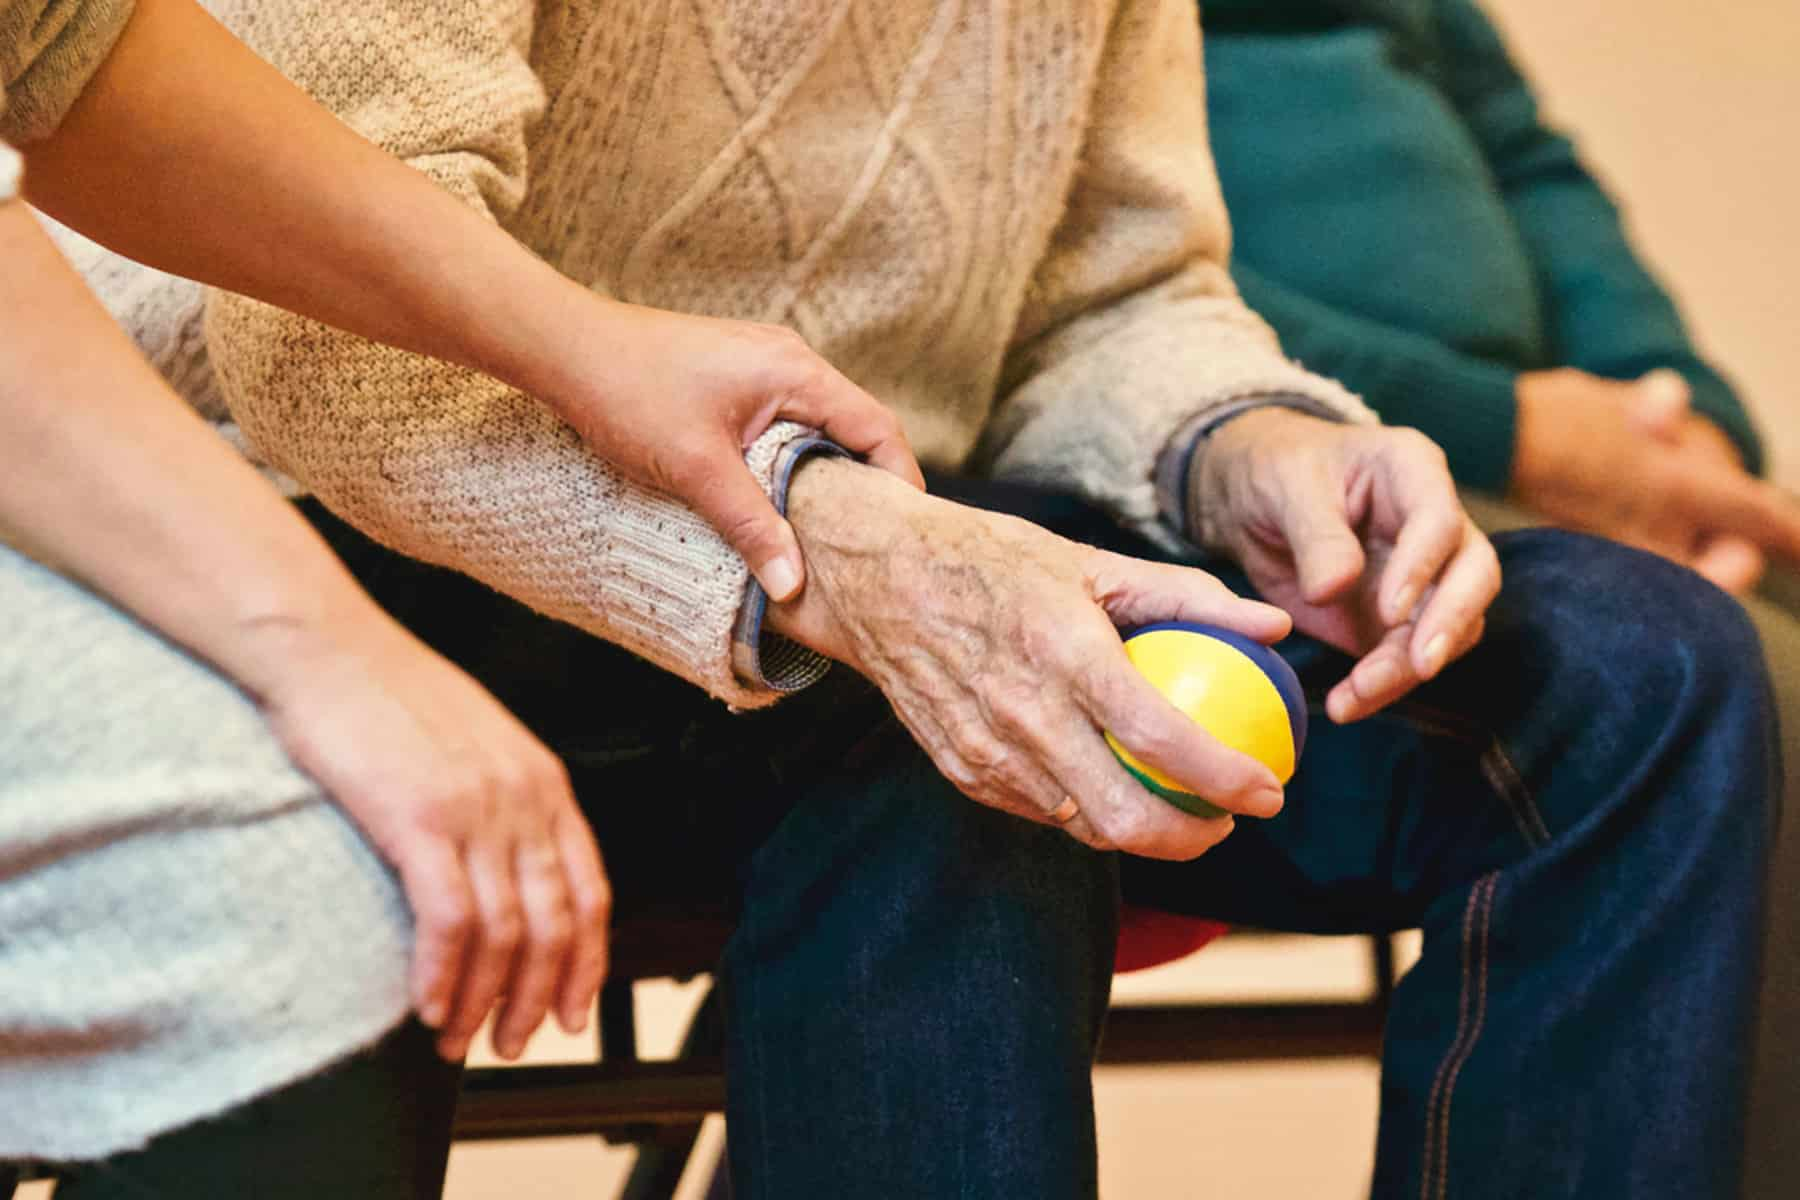 old man holding ball as part of pain treatment